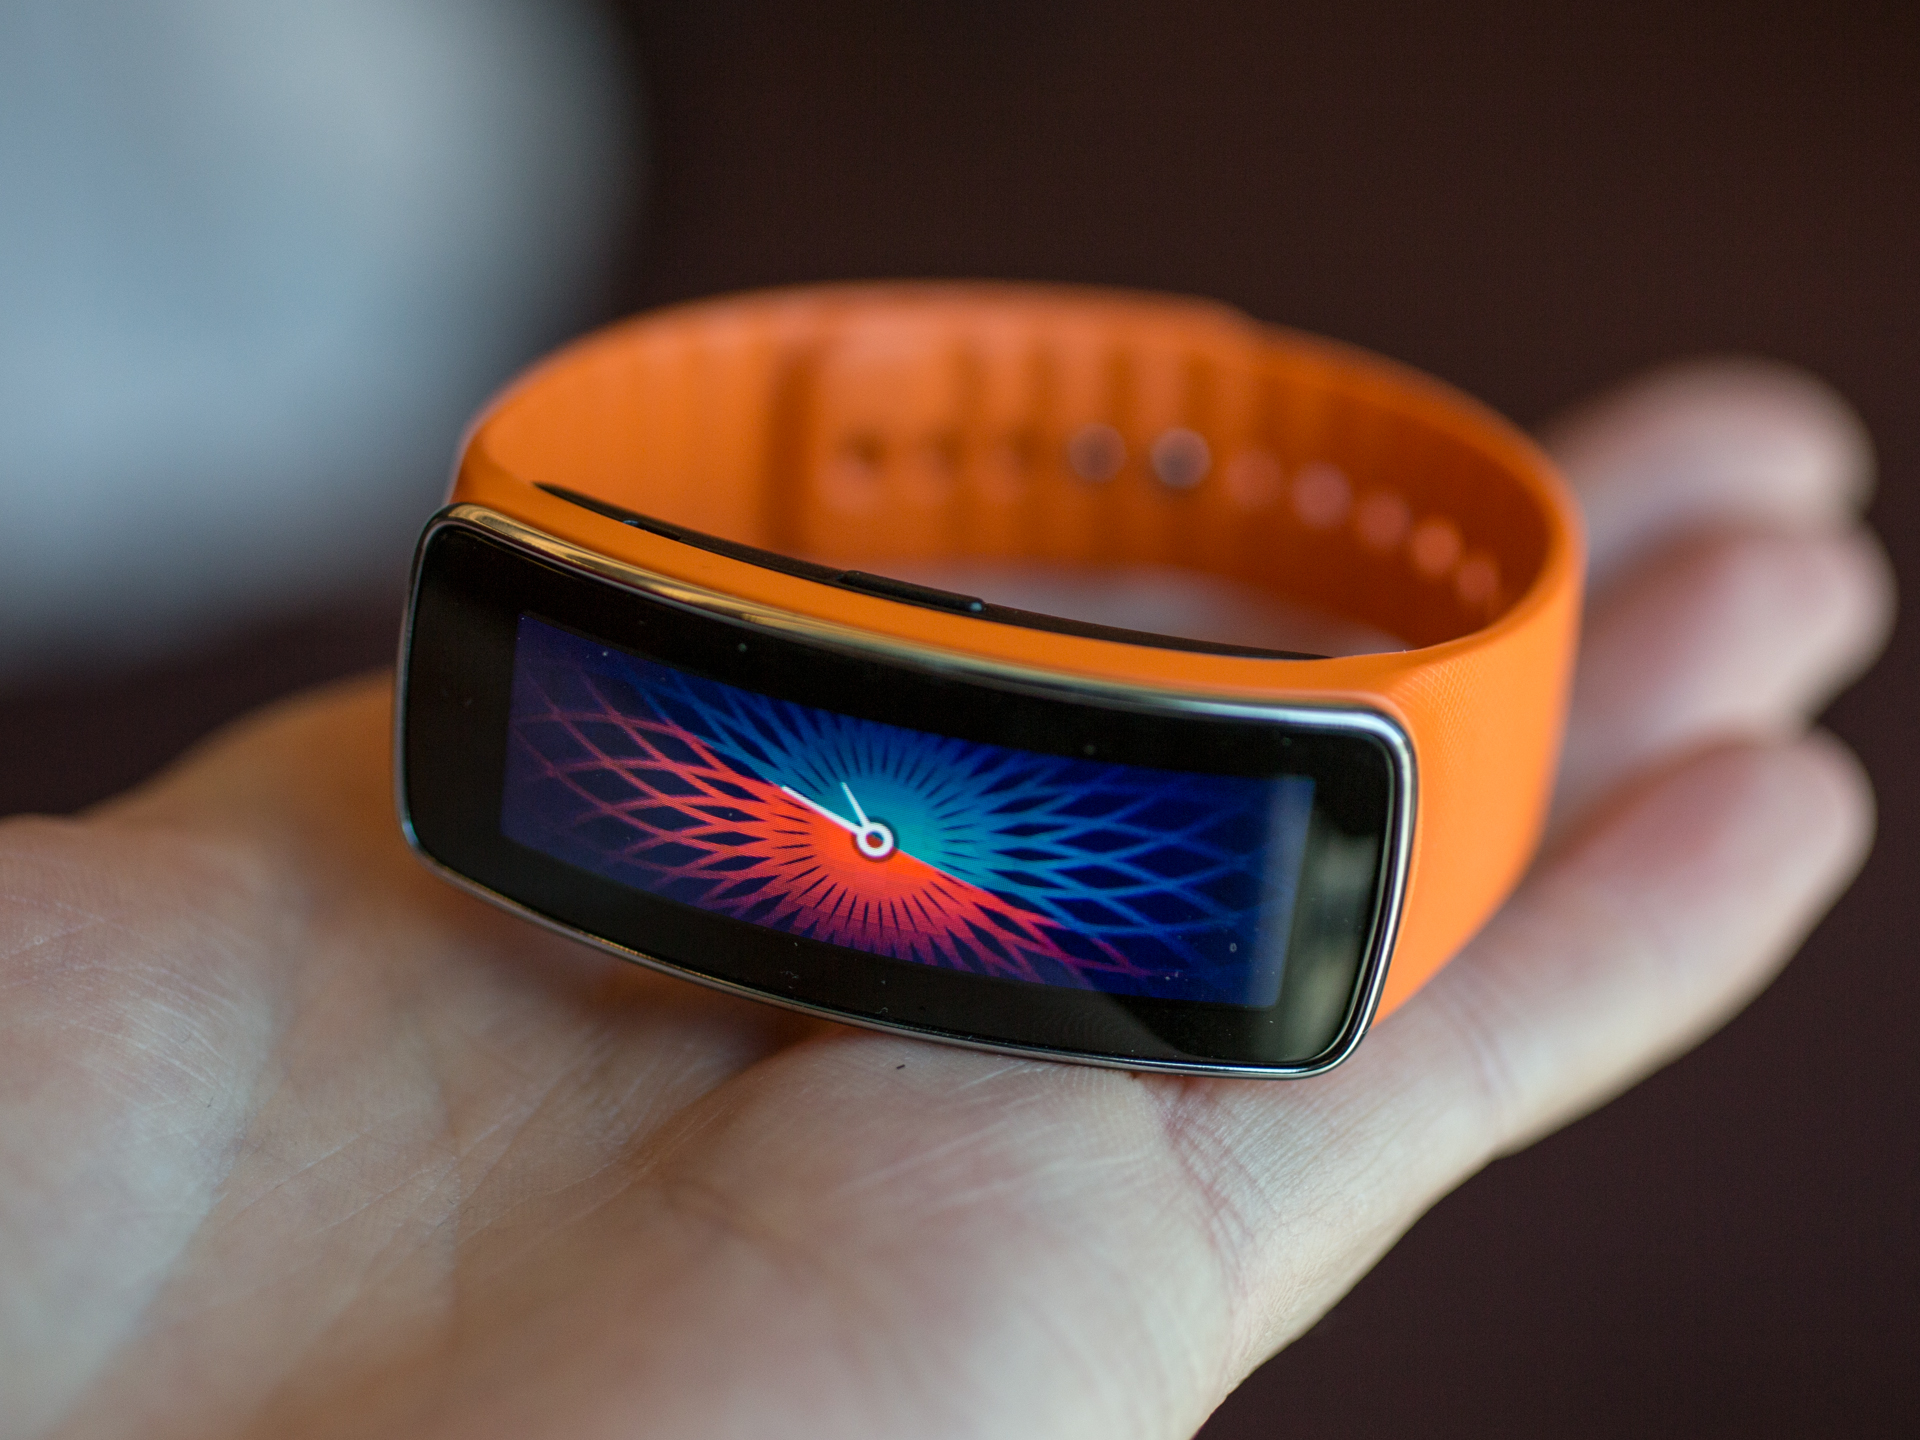 samsung-gear-fit-mwc-2014.jpg